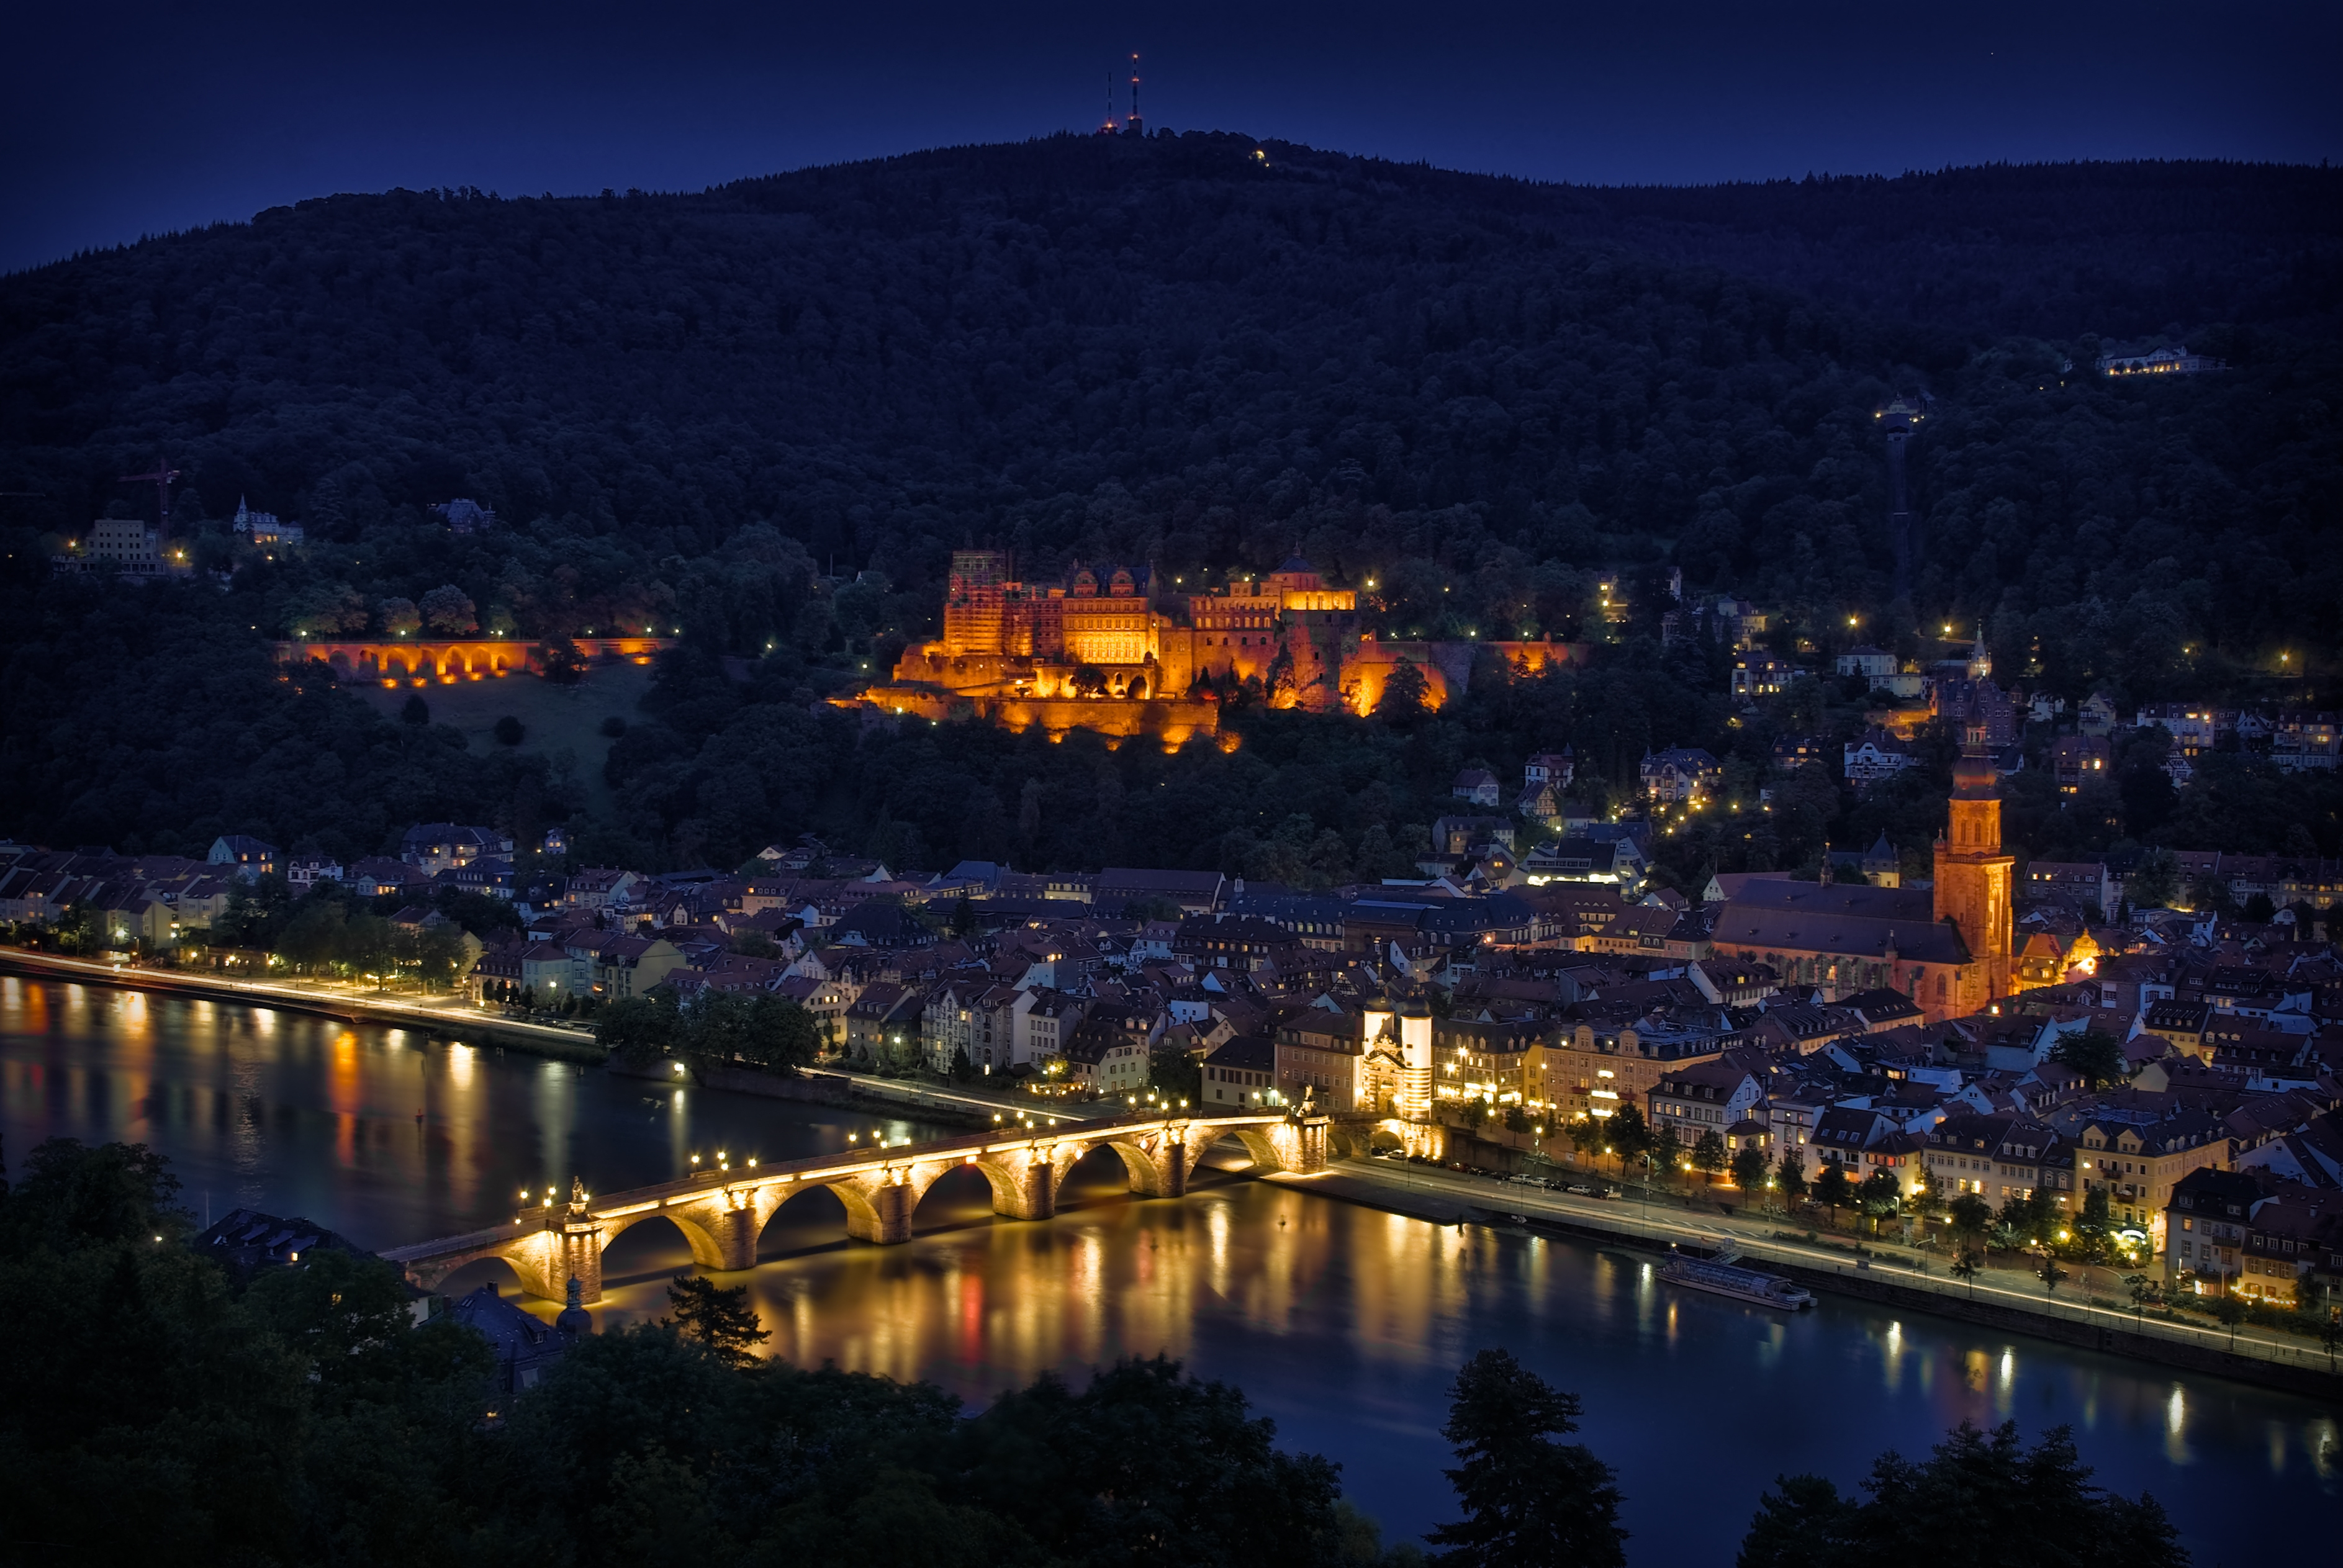 125847 download wallpaper Germany, Heidelberg, Night, Lights, Backlight, Illumination, Bridge, Rivers, Reflection, View, Height, Panorama, Cities screensavers and pictures for free